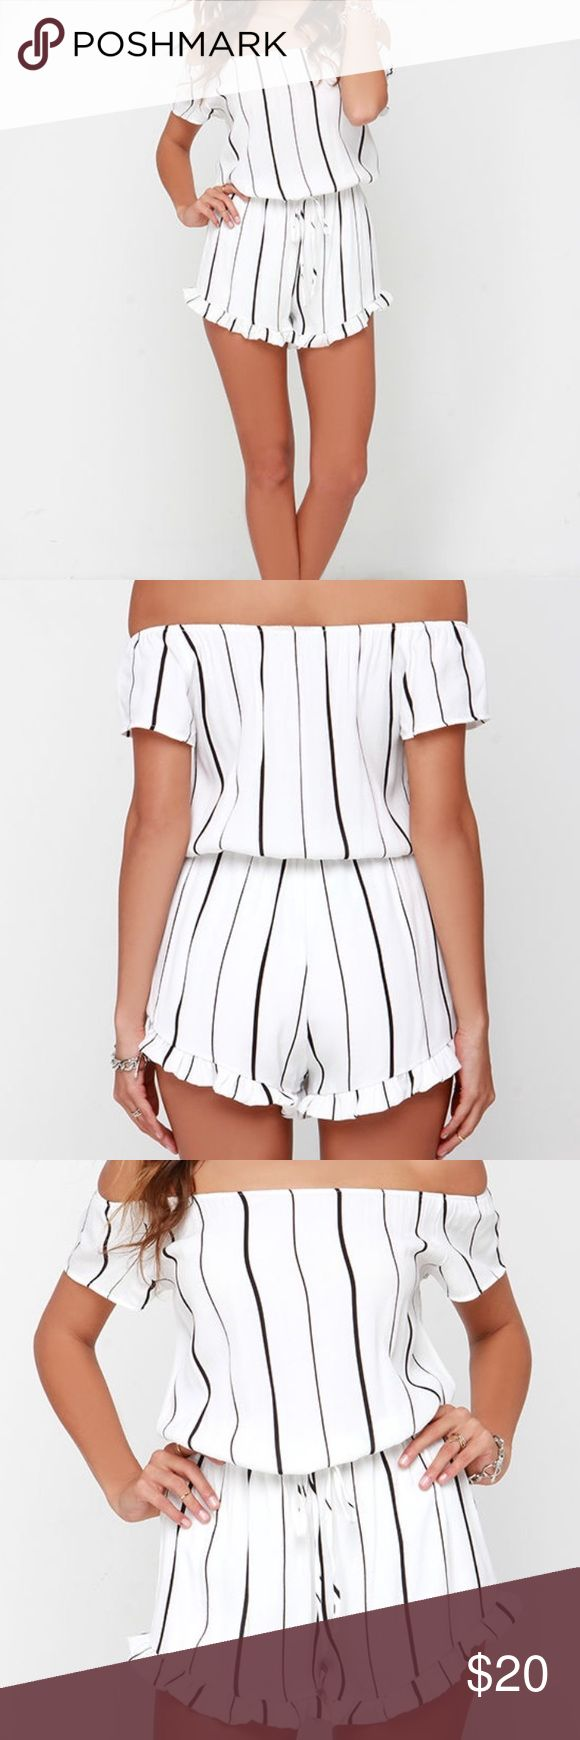 Lulu's Off The Shoulder Striped Romper Never worn off the shoulder, black stripes white romper with string-tie waist. Ruffles at the bottom. Lined. 100% rayon, hand wash cold. Price is set, no lower offers accepted. Lulu's Pants Jumpsuits & Rompers